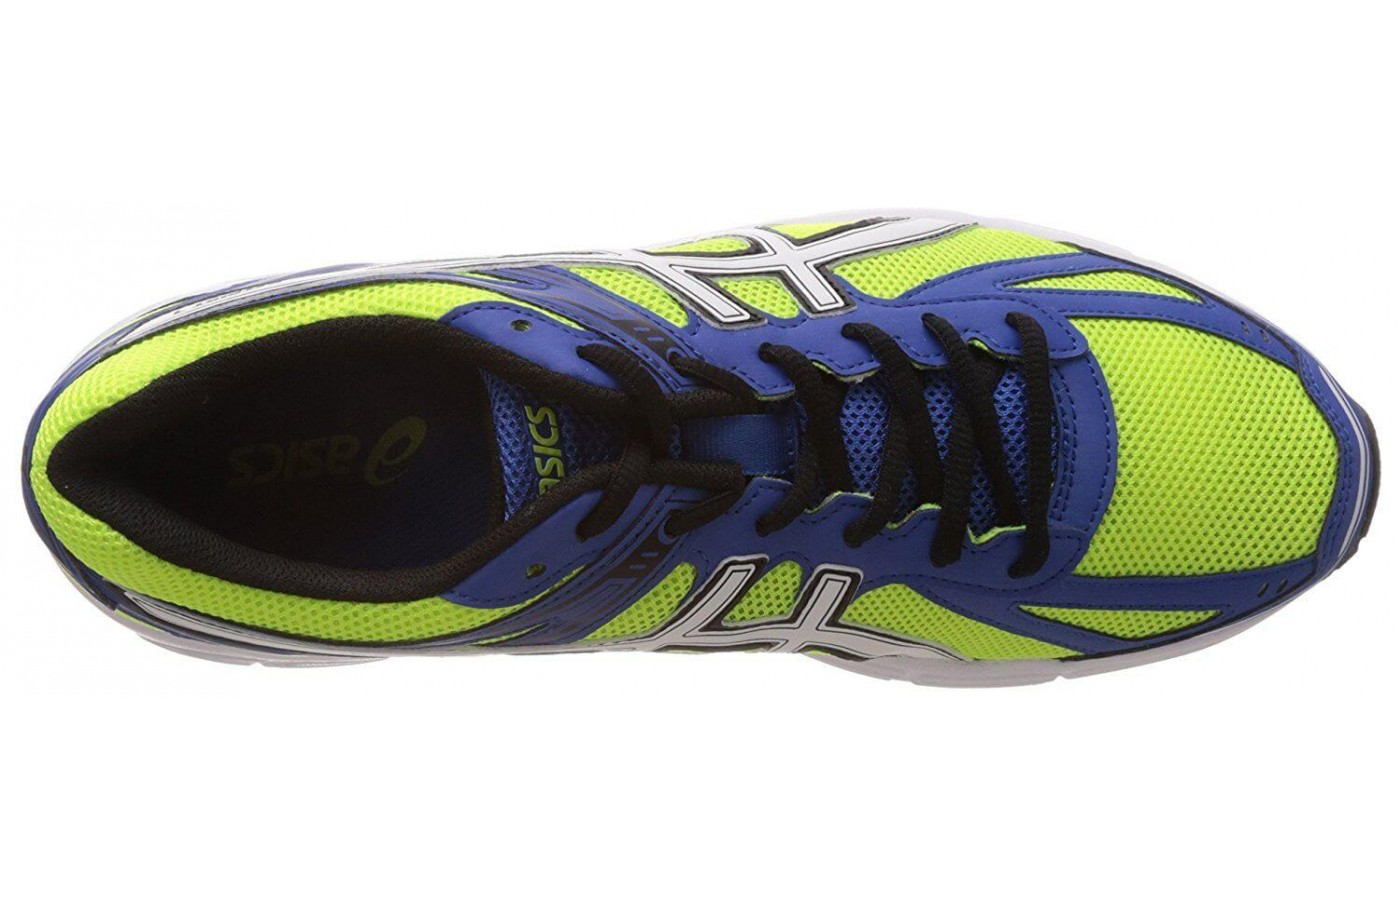 This shoe includes an internal sock liner for added cushioning and support